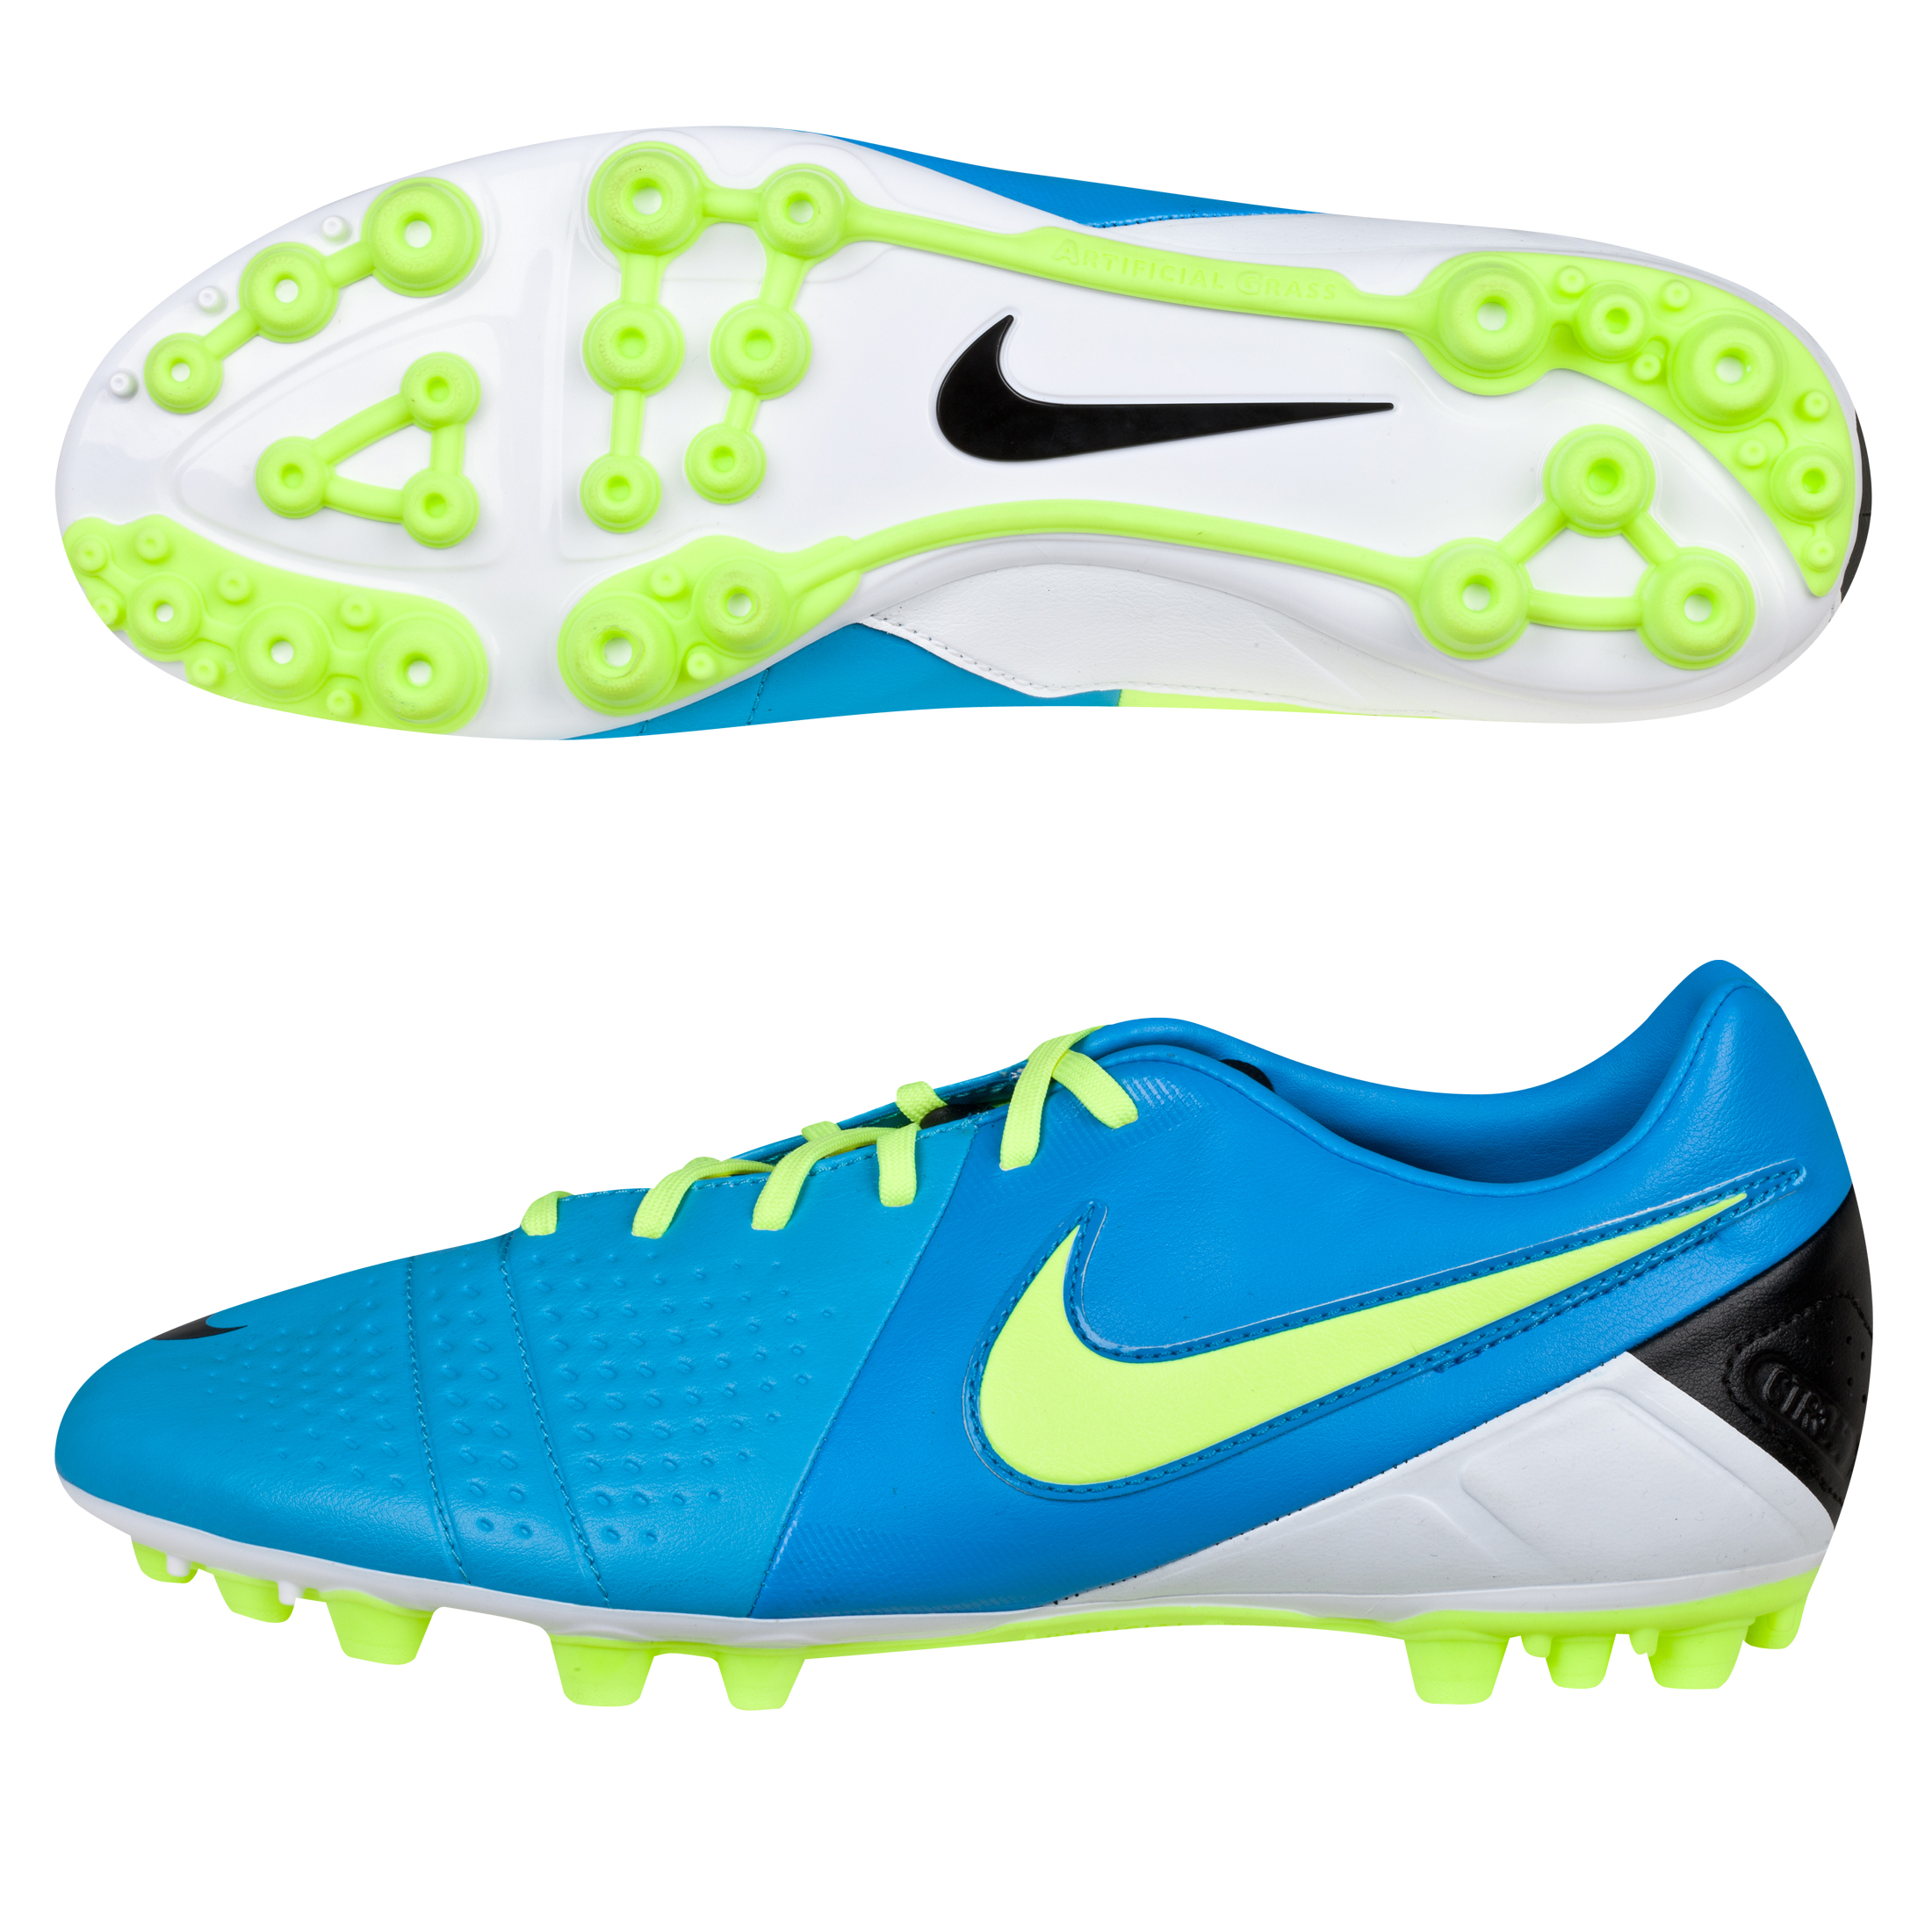 Nike CTR360 Libretto III AG Football Boots Blue